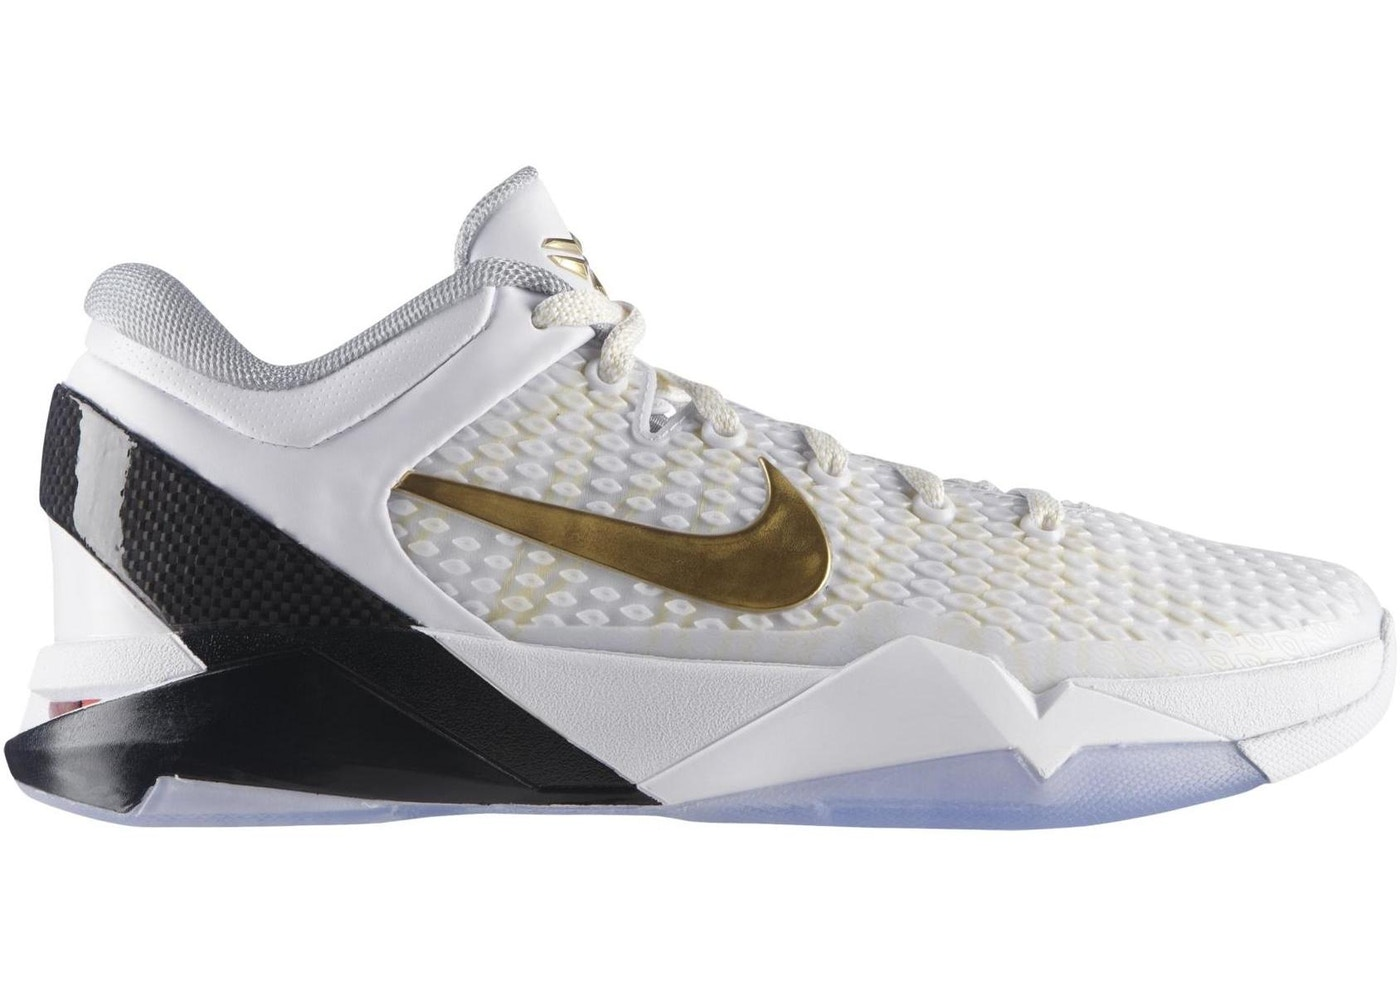 63010c25ff2 Kobe 7 Elite (Home) - 511371-100